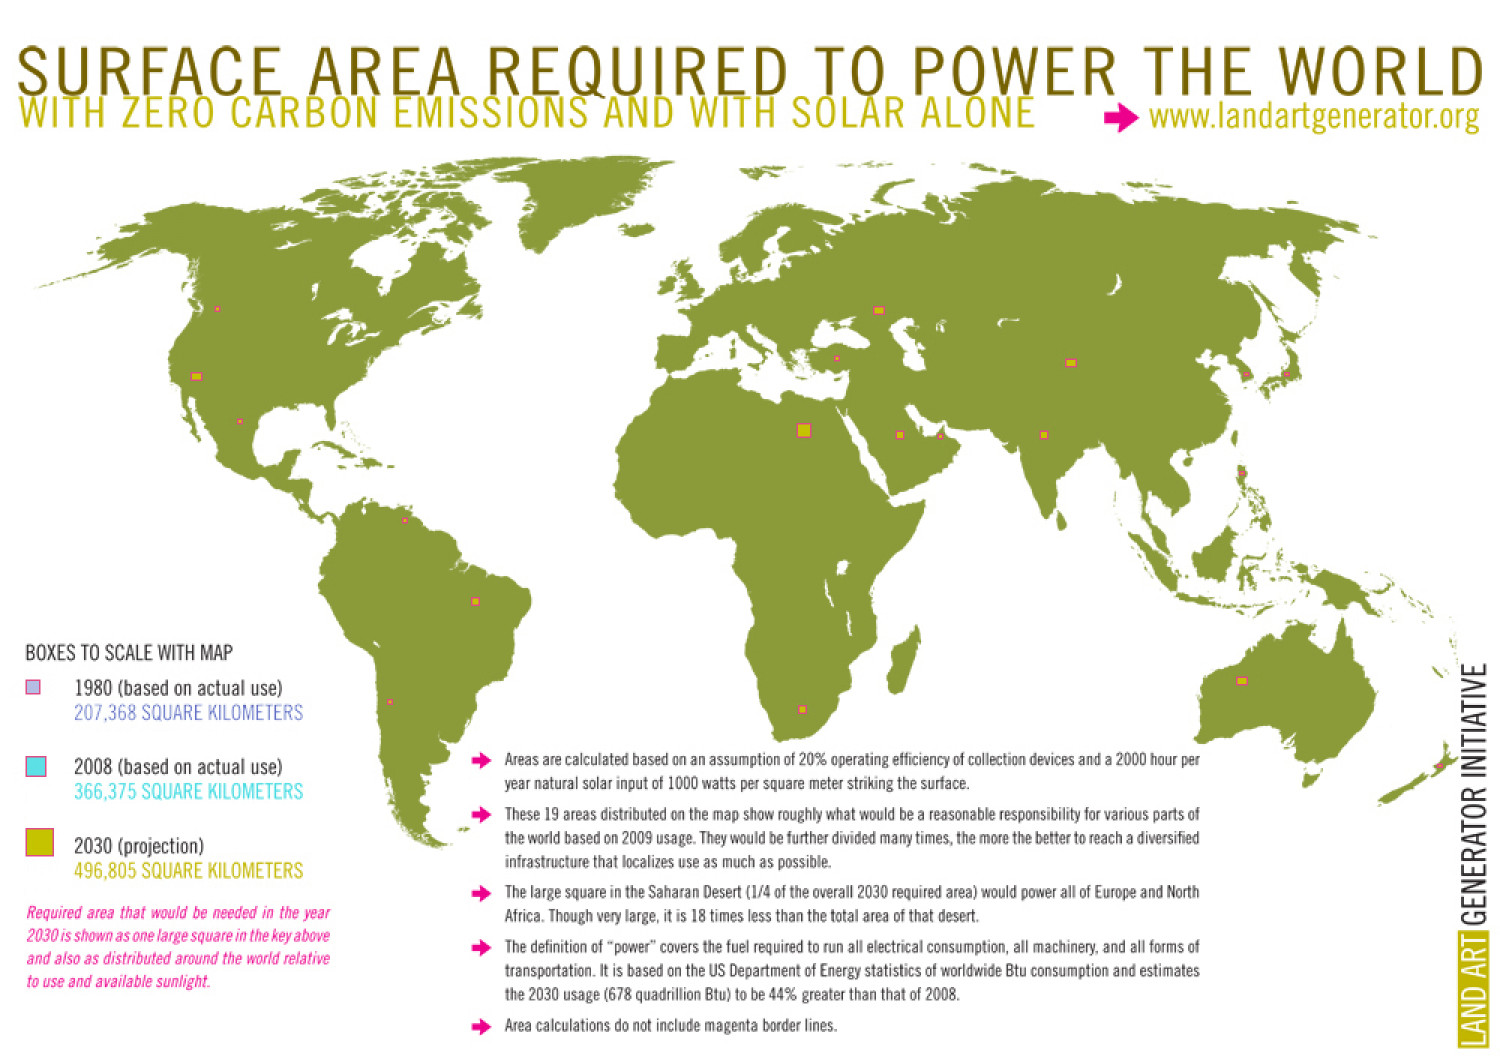 Powering the World with Zero Carbon Emissions and Solar Power Alone Infographic